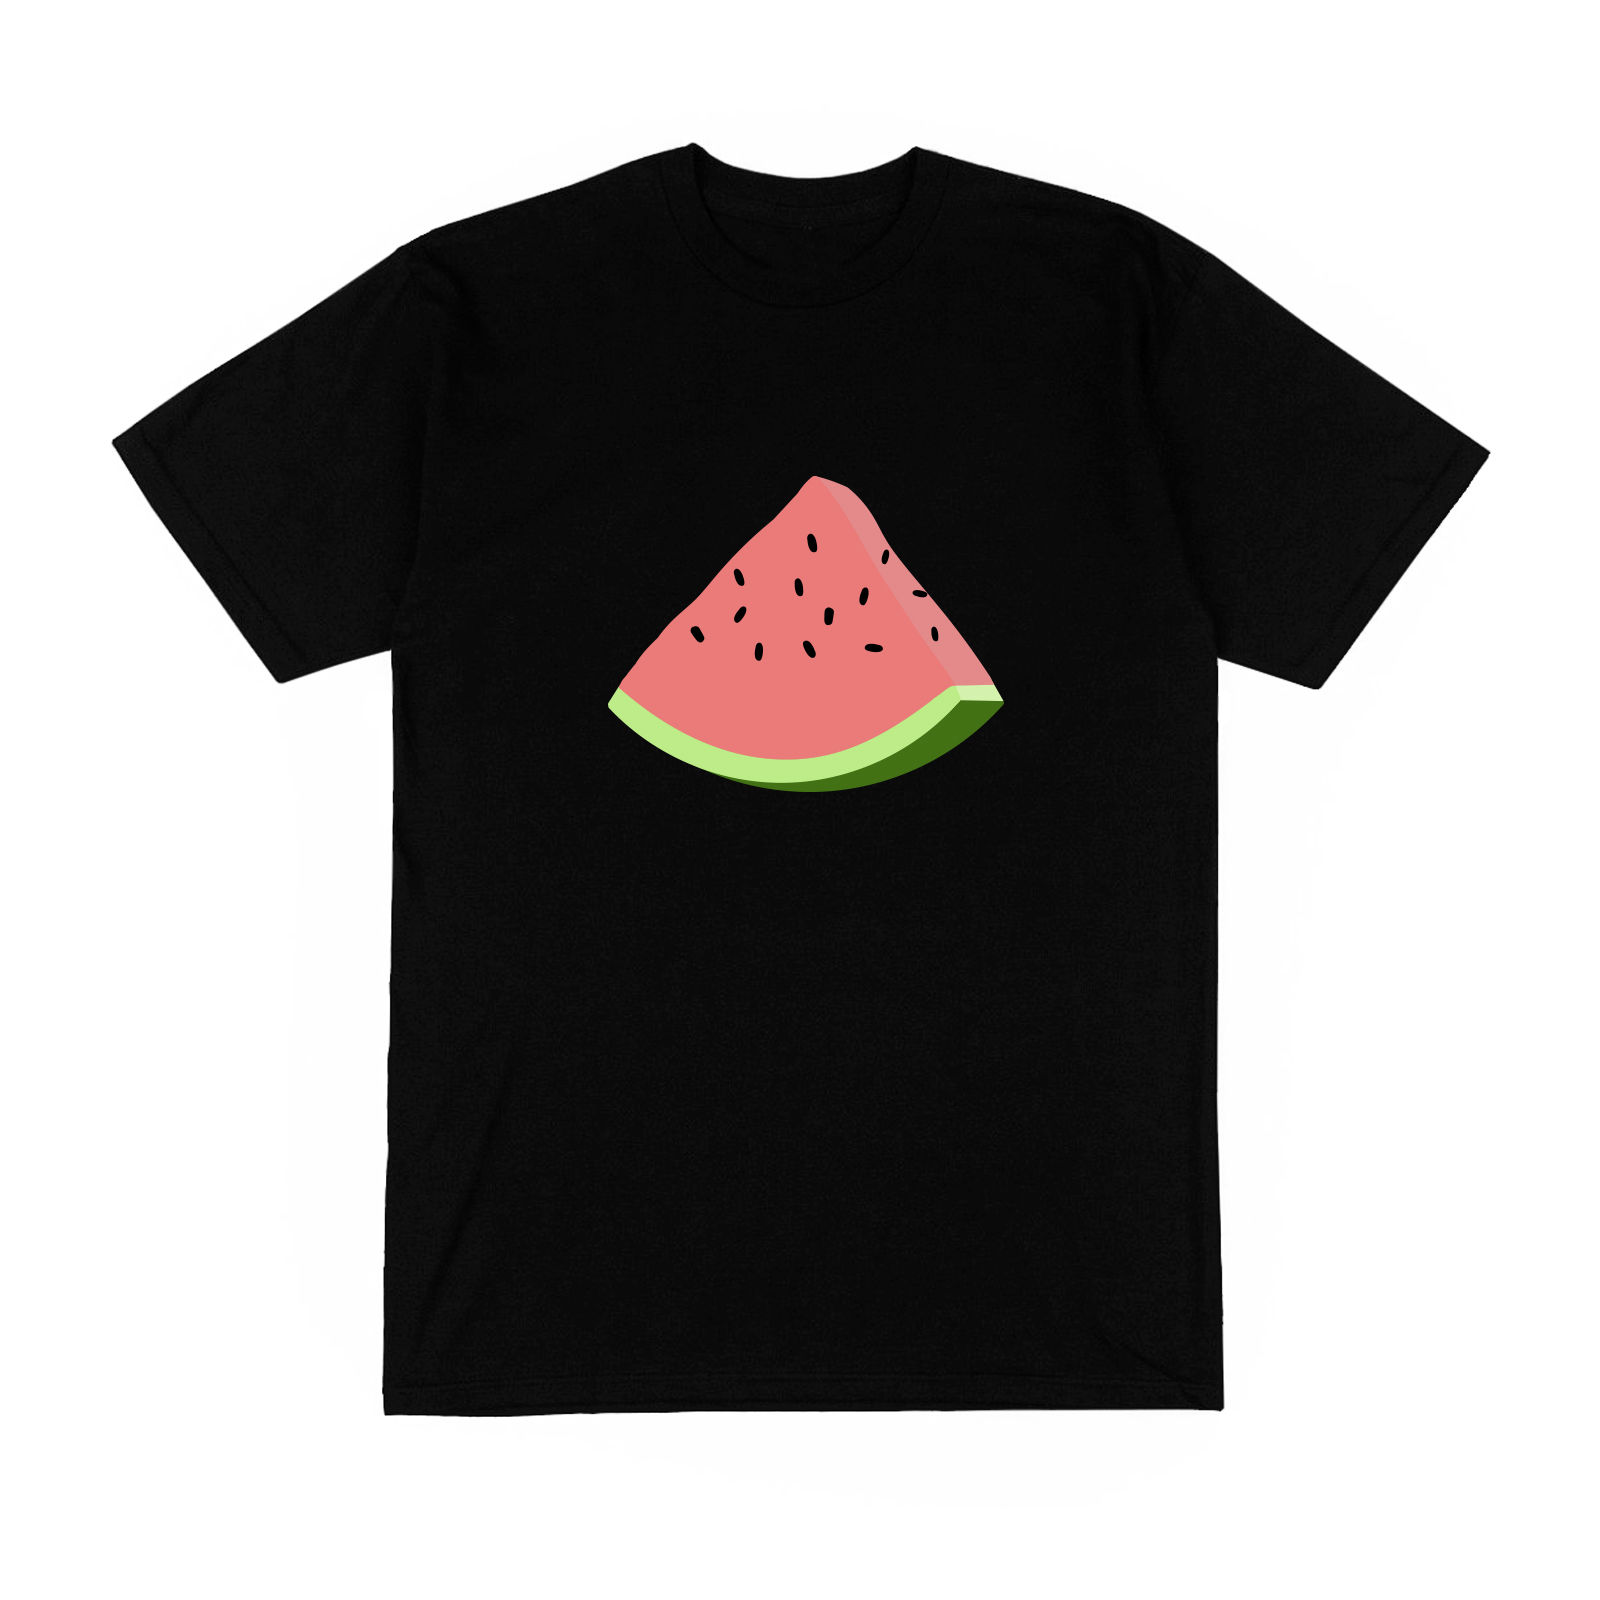 Women Short Sleeve Tee T-shirt Homme pasteque soleil plage vacances fruit amusant logo mode france